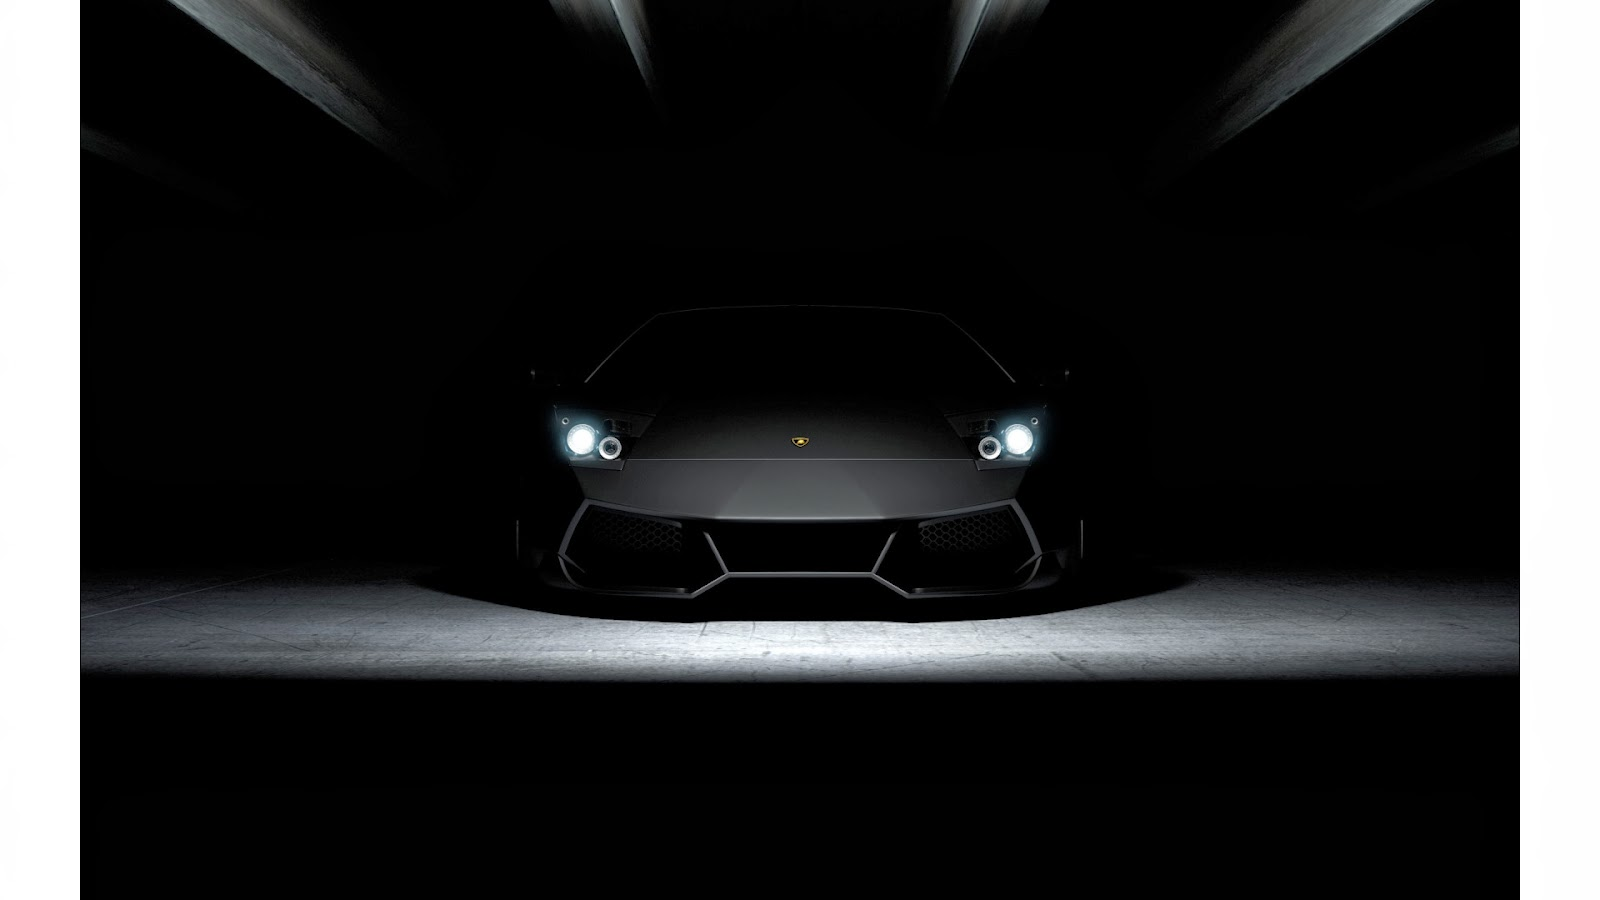 Wallpaper 1 18 Of 77 Lamborghini HD Wallpapers At 1920x1080 And 1920x1200 Resolution With Desktop